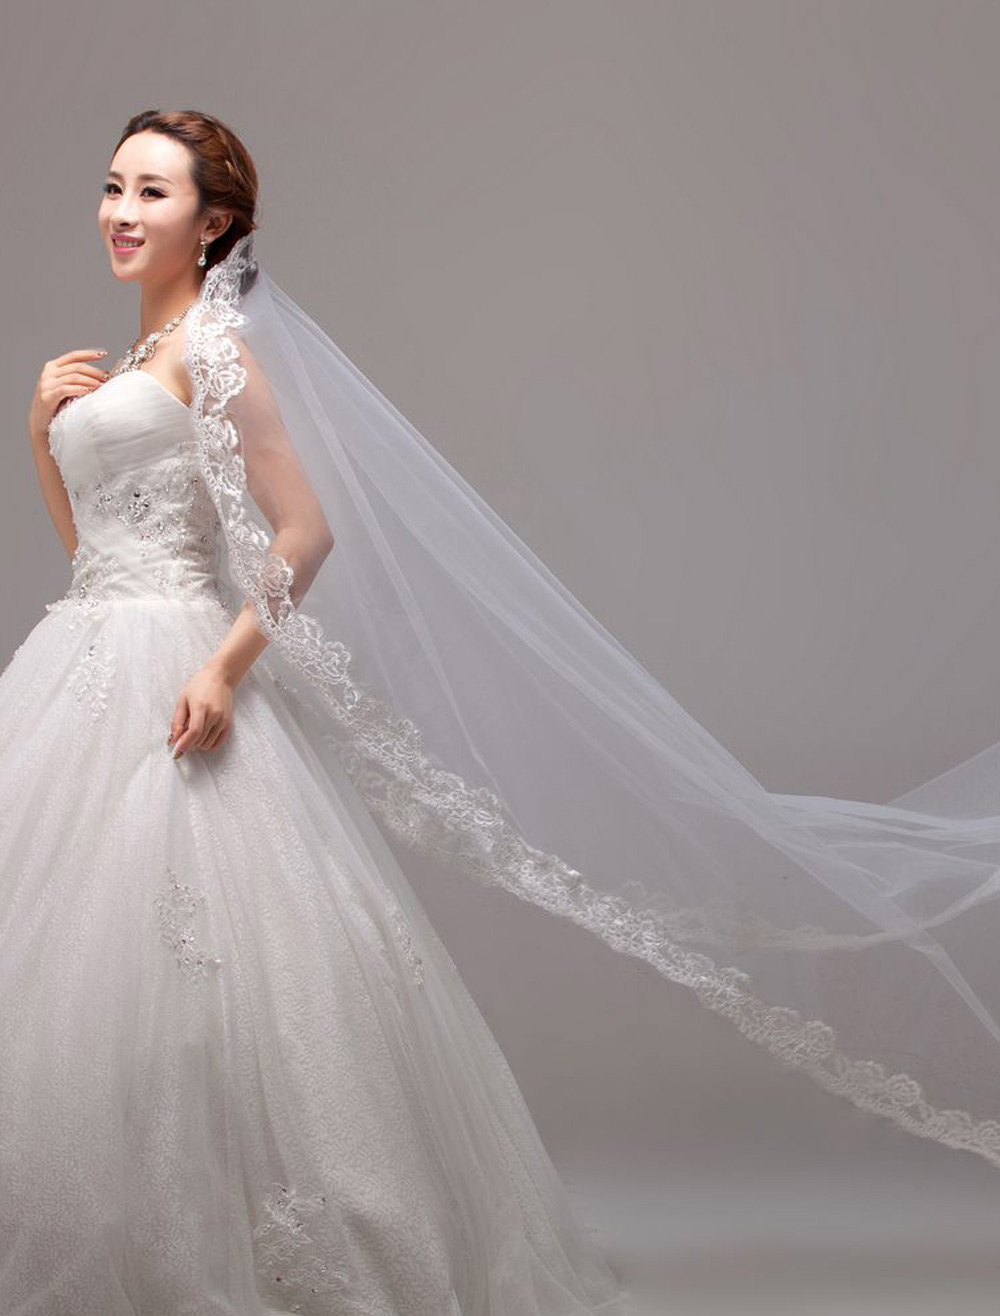 Waterfall Luxuary Embroideries Vintage Lace Applique Edge Cathedral Wedding Veil In One-Tier